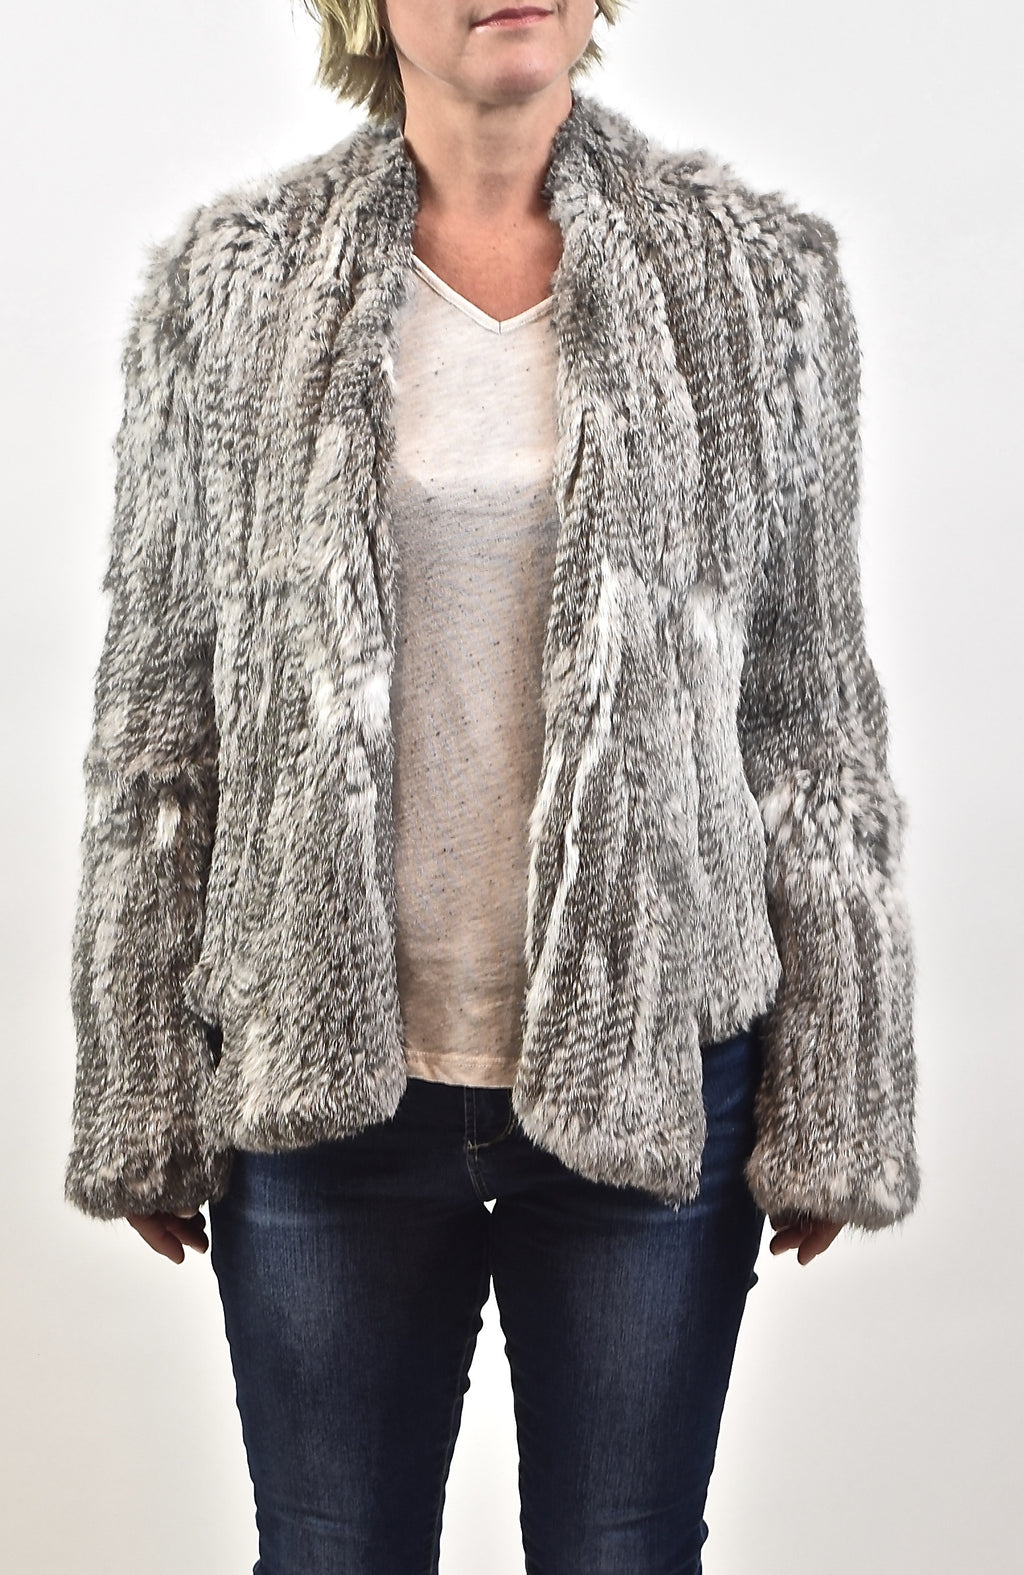 Knitted Rabbit Fur Jacket